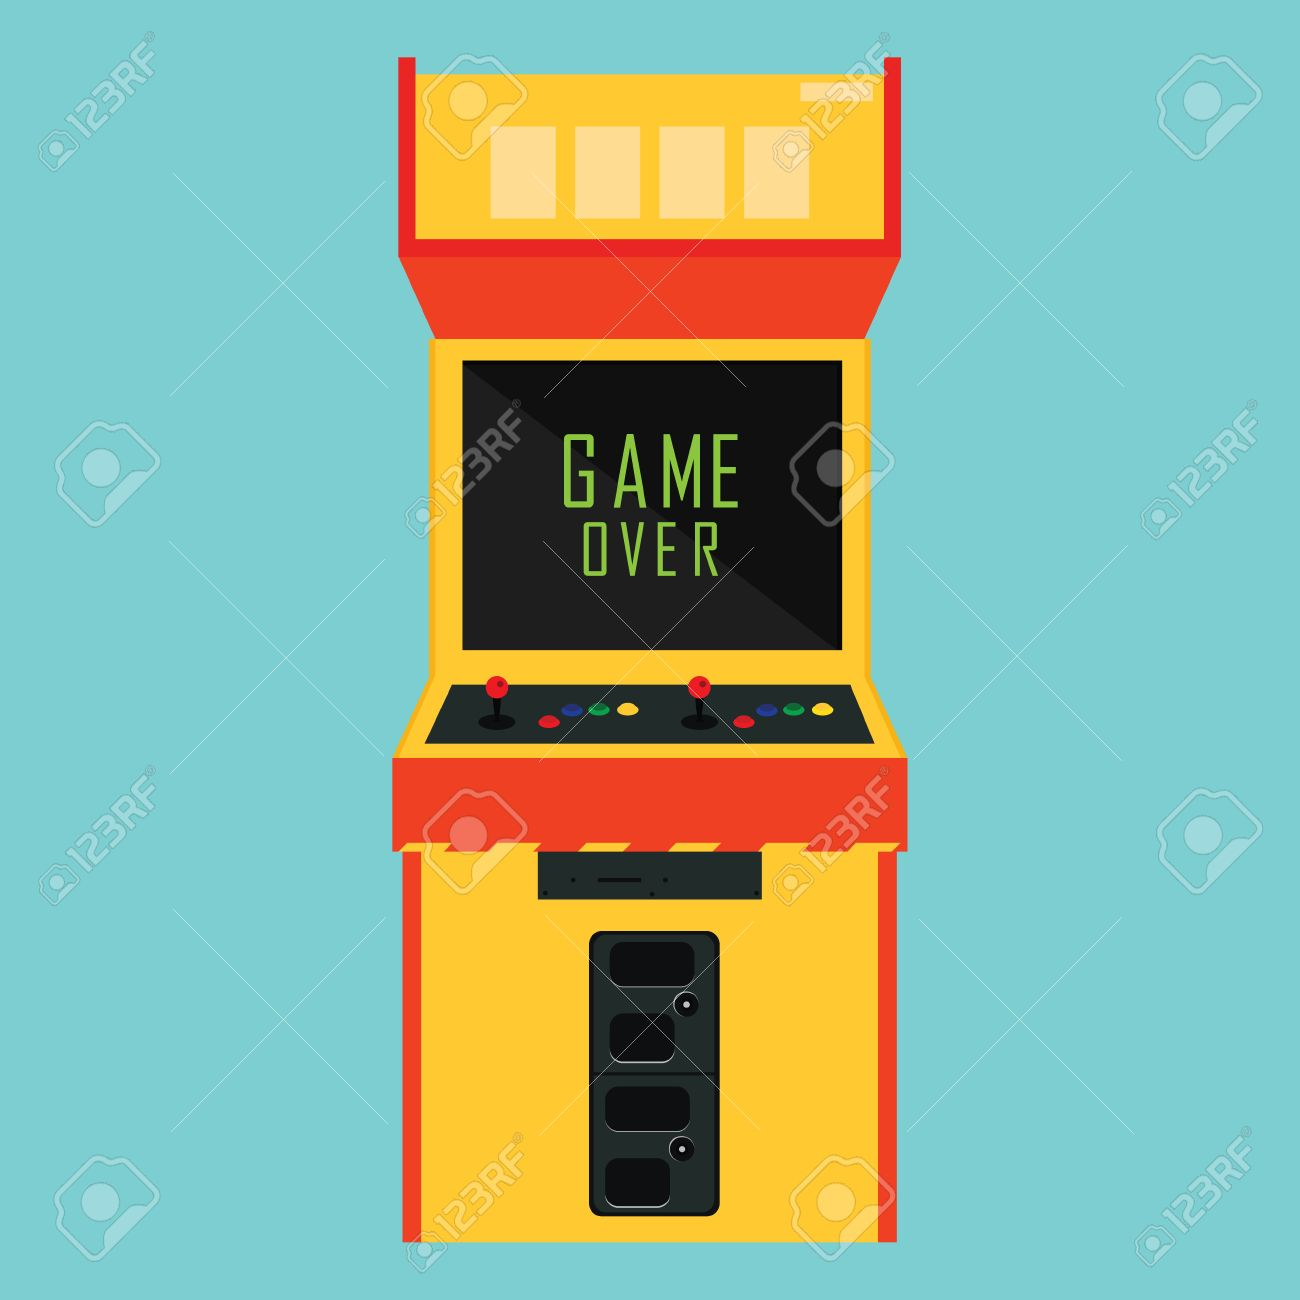 Vector illustration retro arcade with pixel game over message. - 51954825